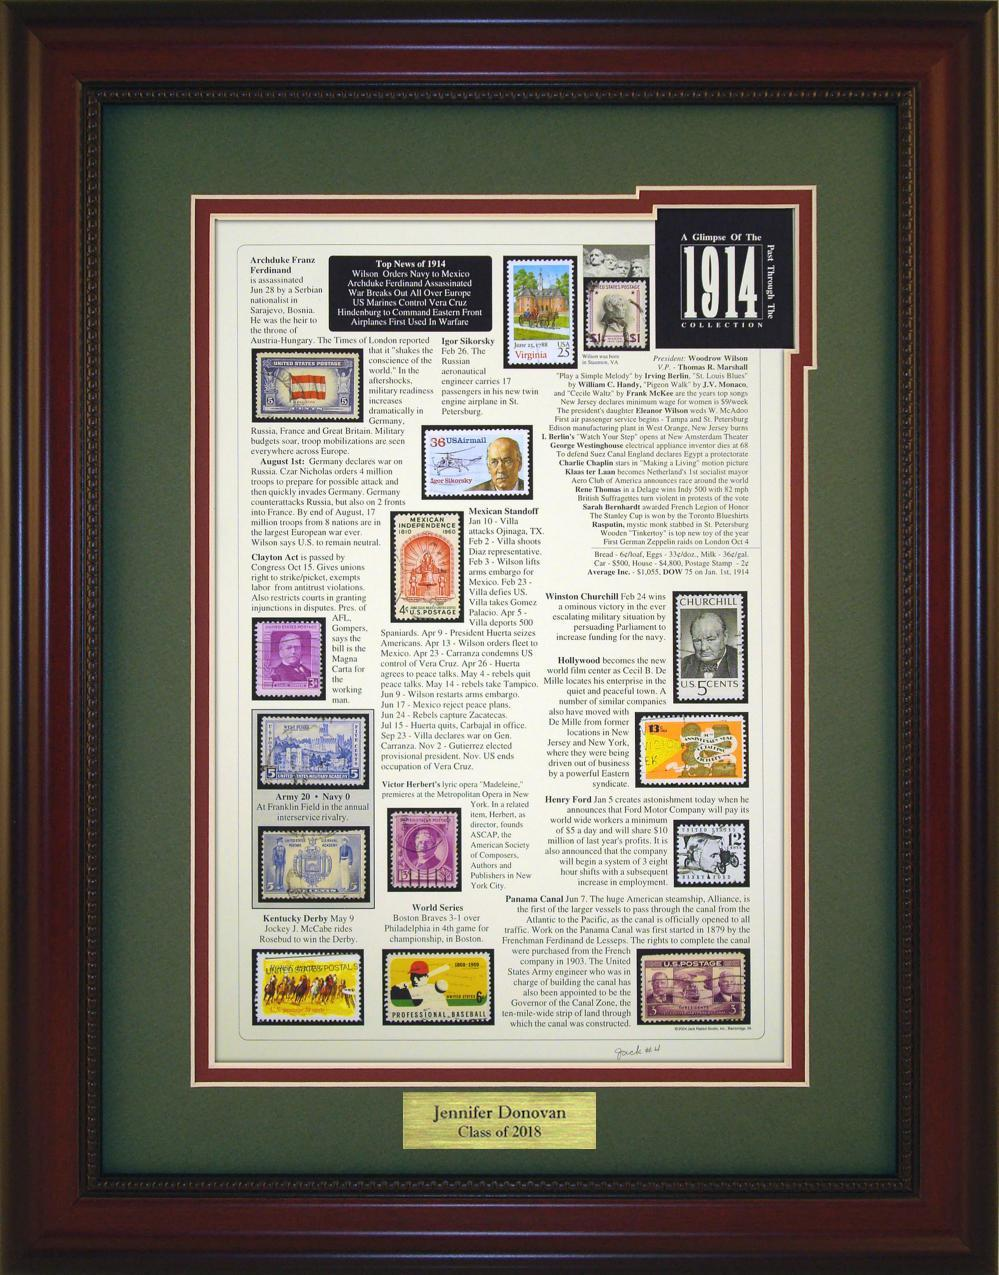 Year 1914 - Personalized Unique Framed Gift